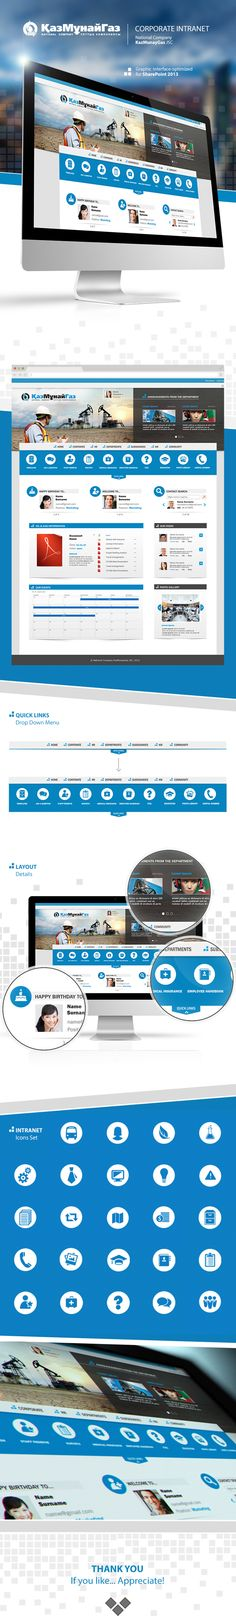 Graphic Layout Interface - CORPORATE INTRANET on Behance